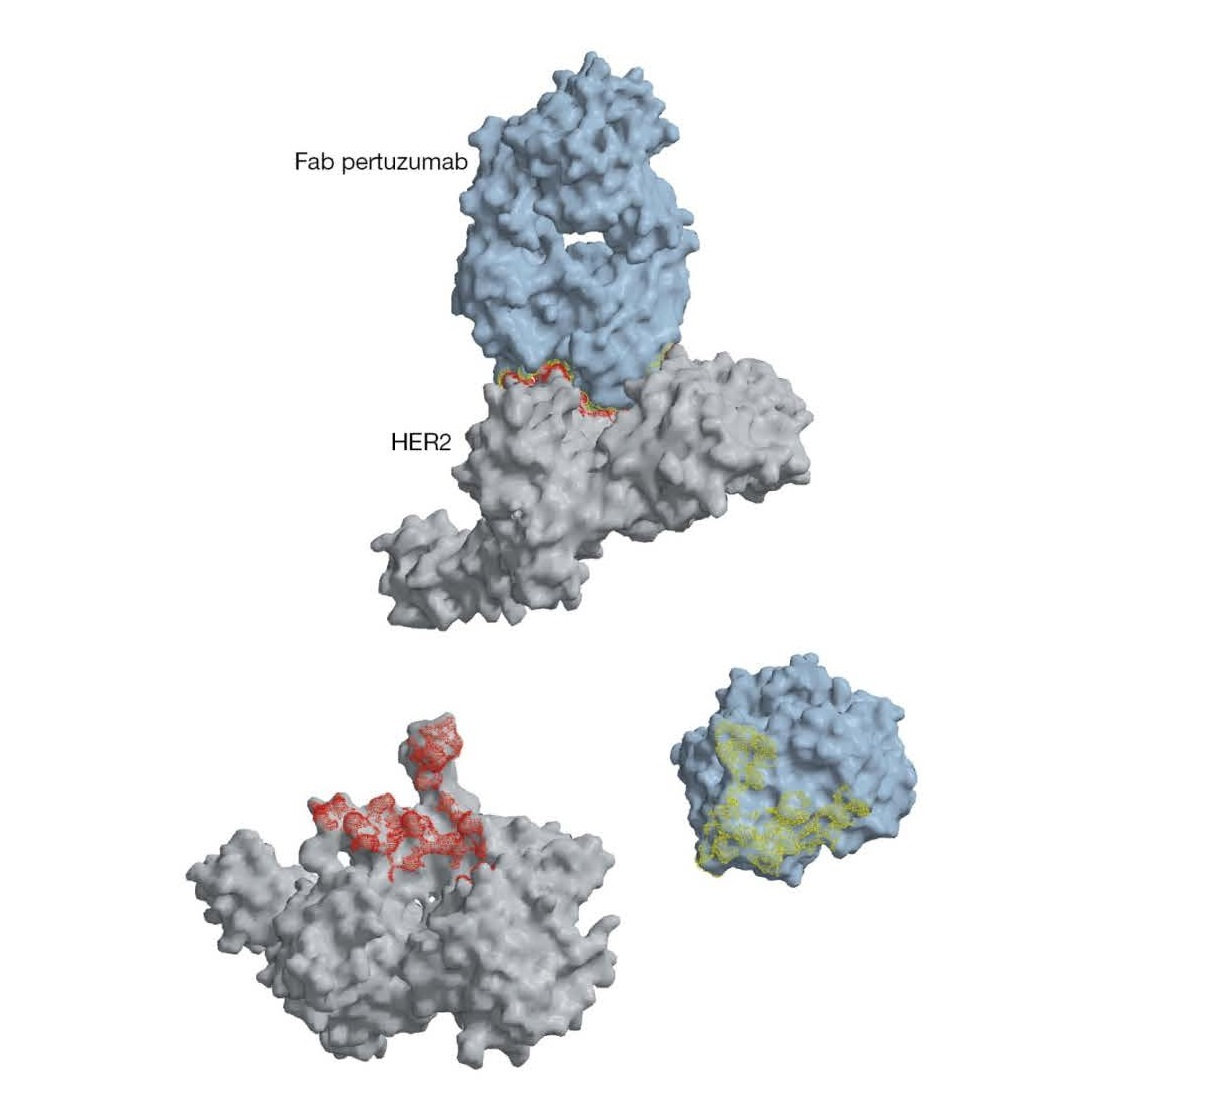 Complementarity of the antibody combining site and the epitope recognized on the antigen